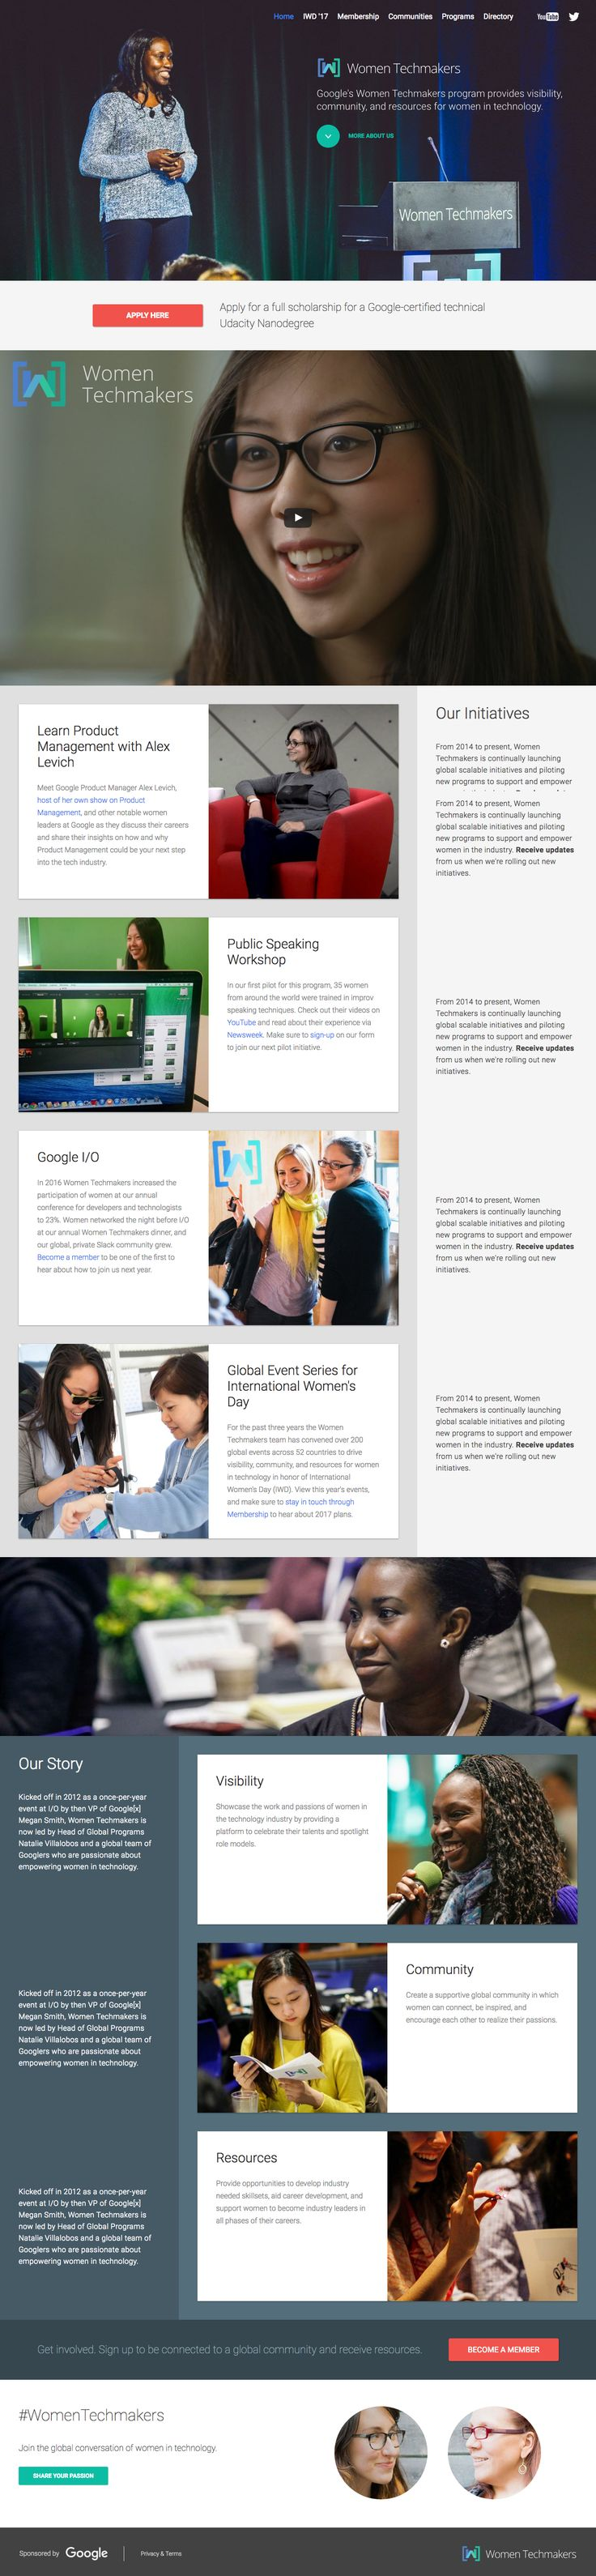 Google initiative, design is focused on its social impact rather than the impact of learning tech on girls.